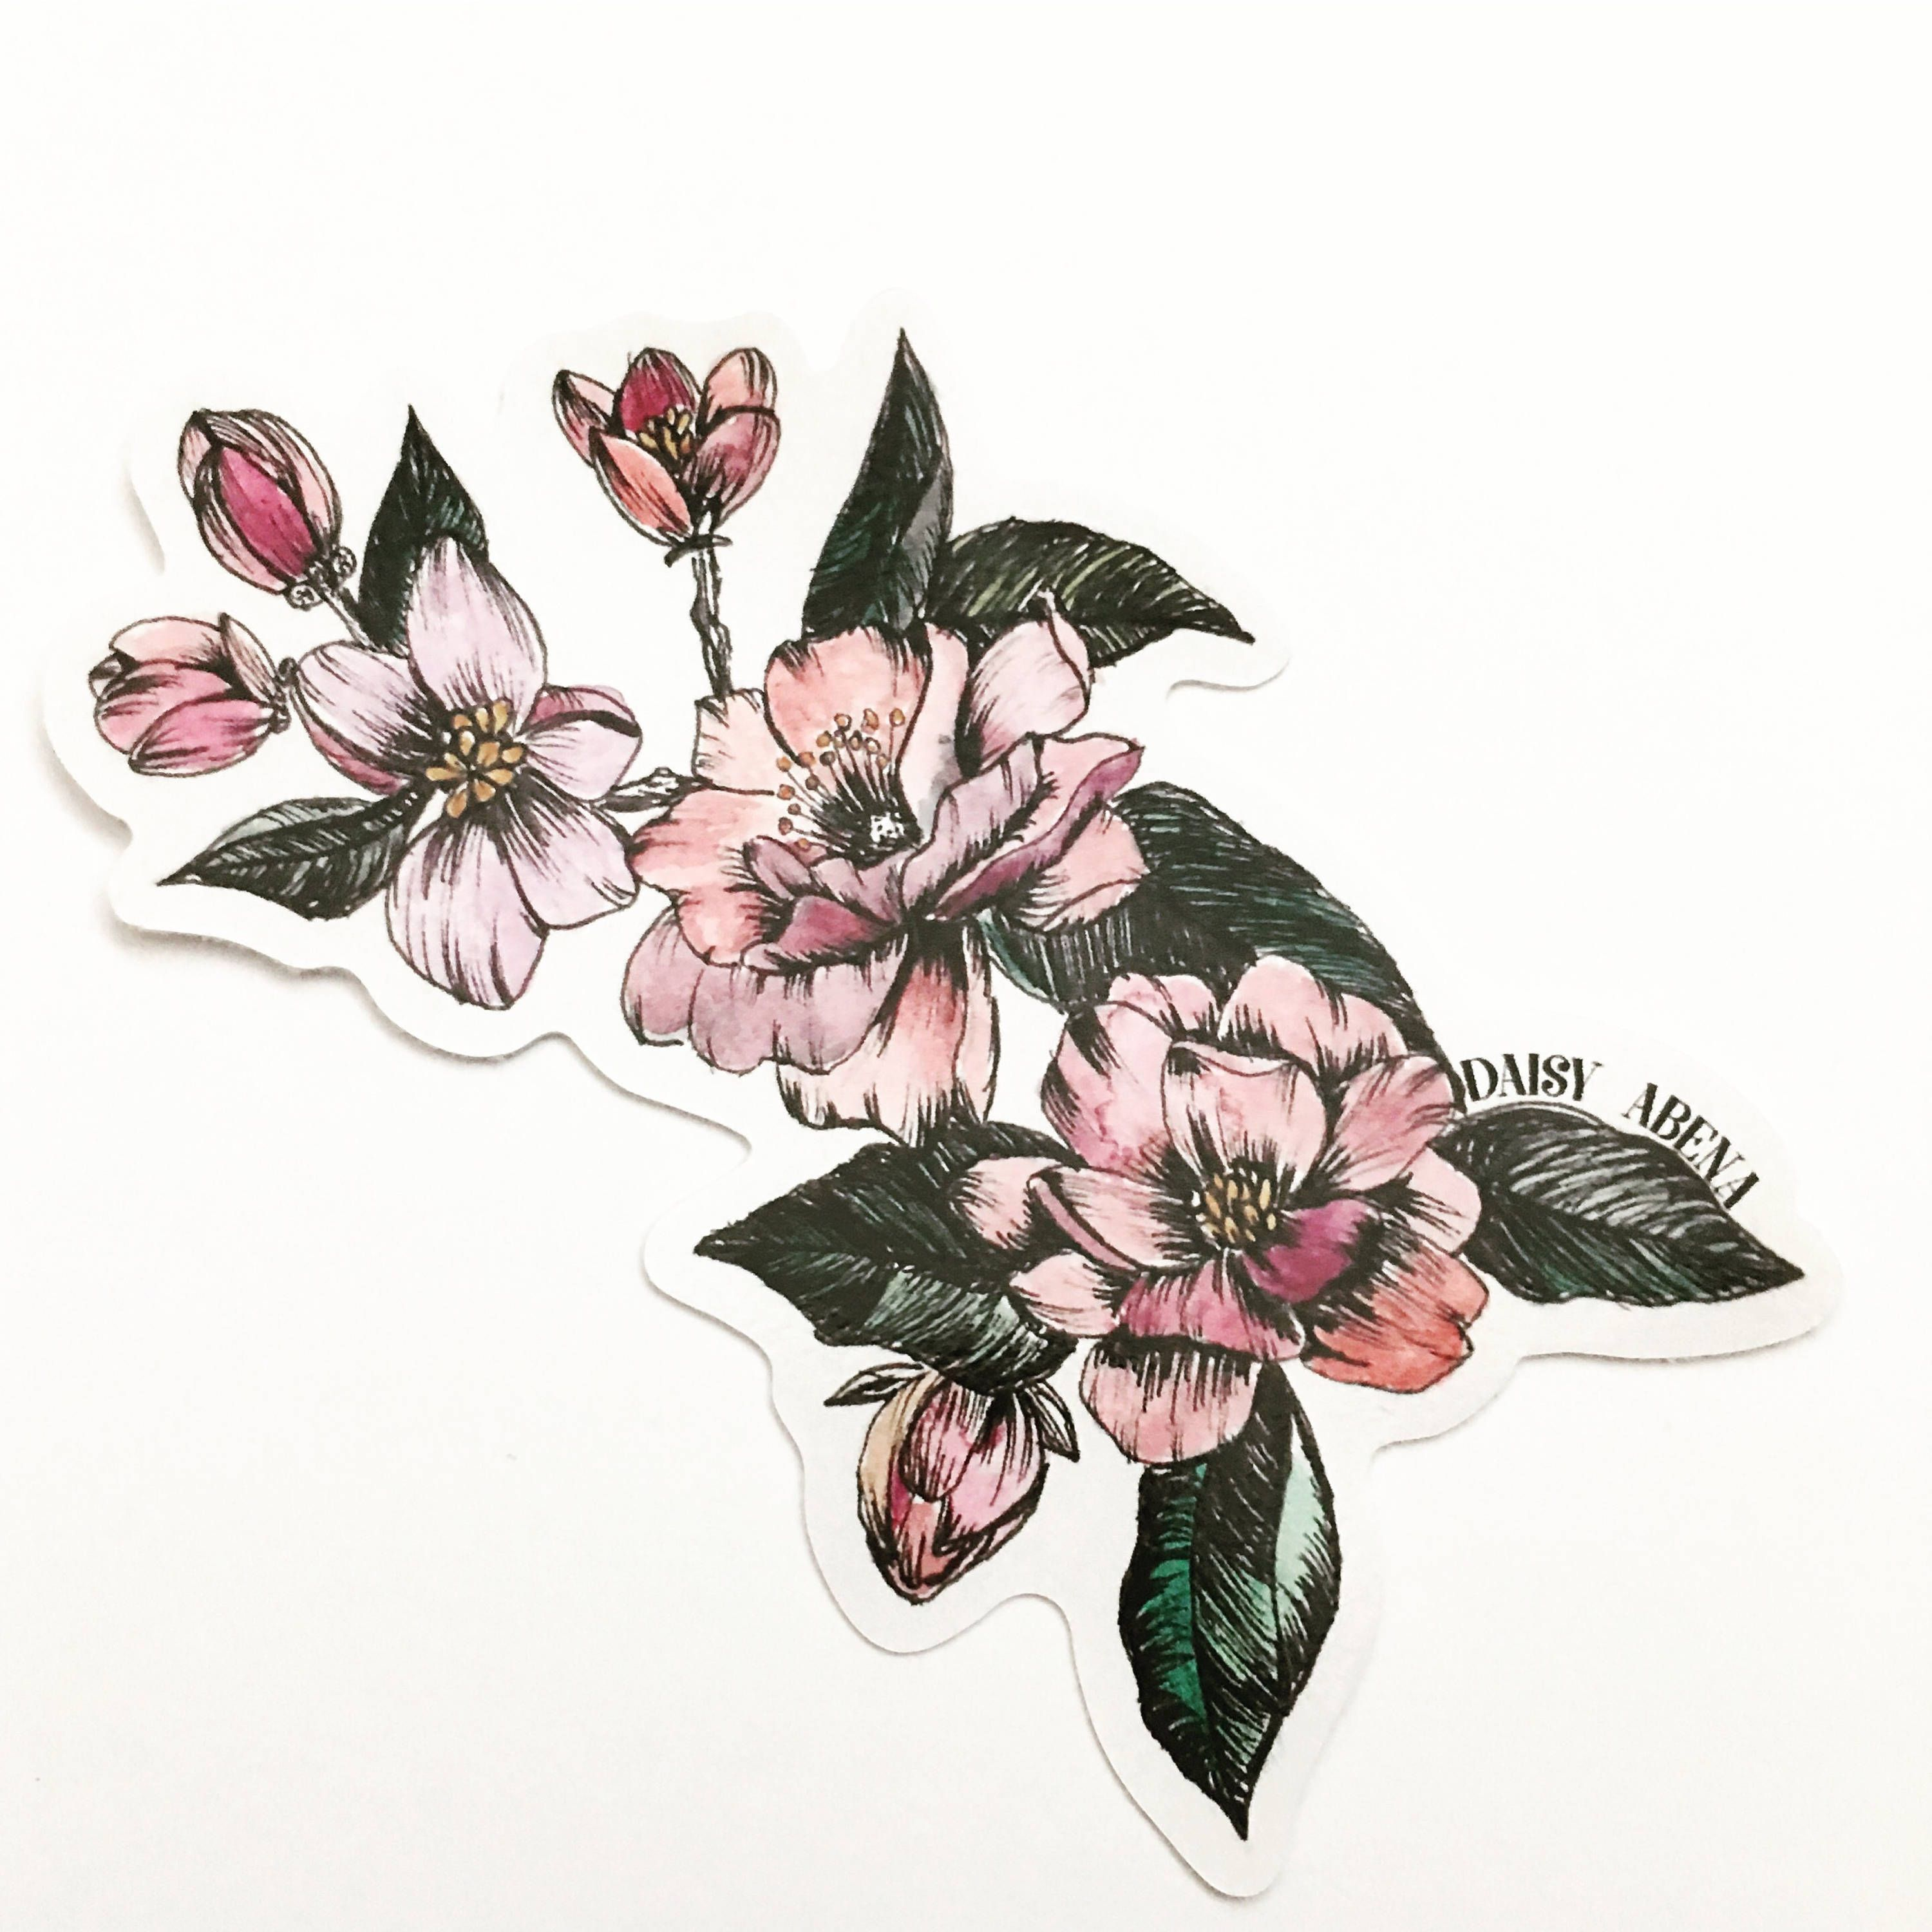 Floral stickers stickers illustration stickers vinyl stickers laptop stickers flower stickers flower illustration illustration